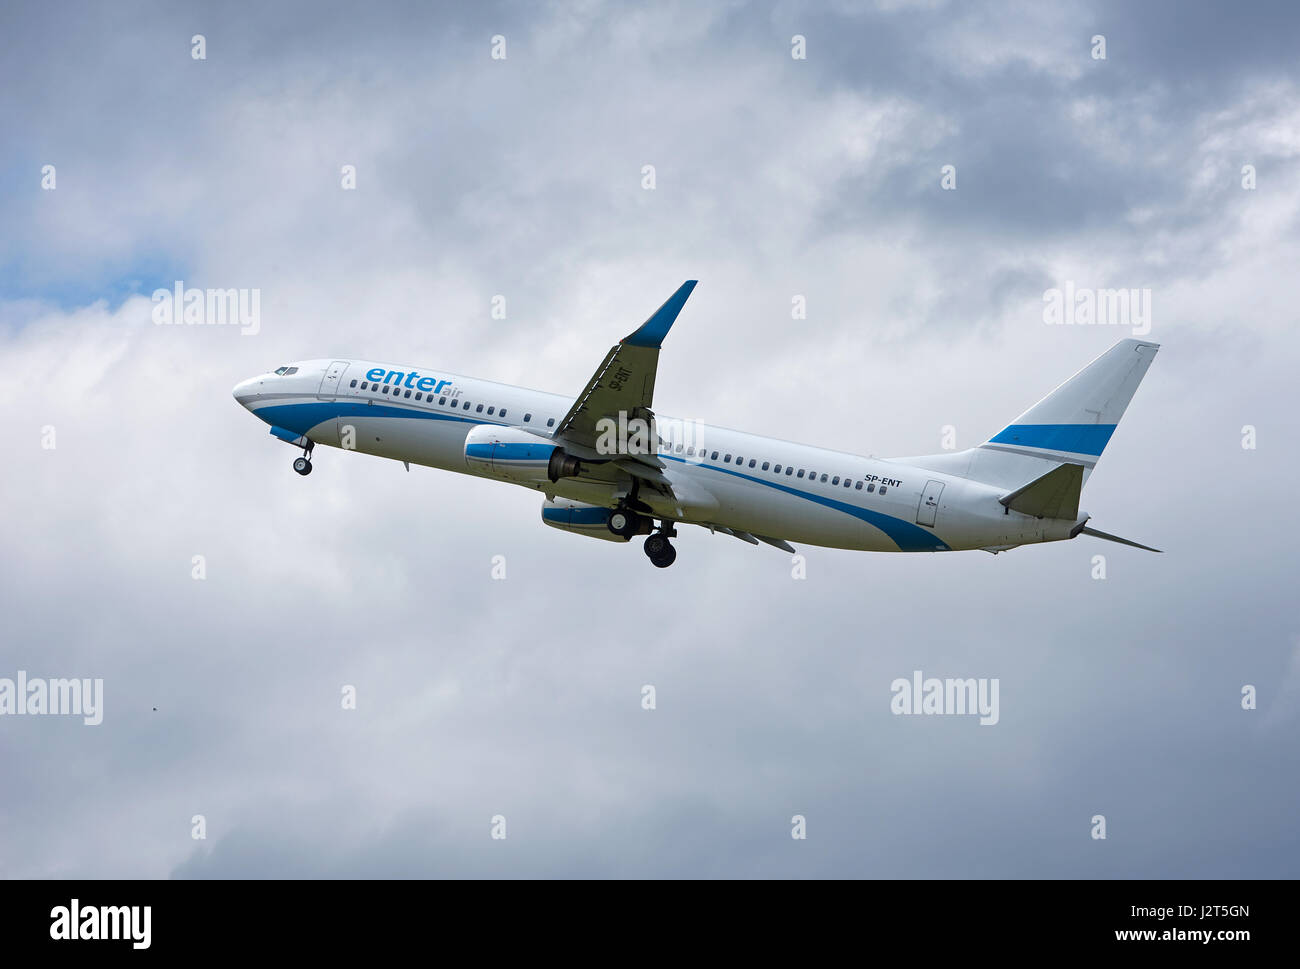 A Polish 737-8AS departing Inverness Dalcross airport in the Scottish Highlands, UK. Stock Photo